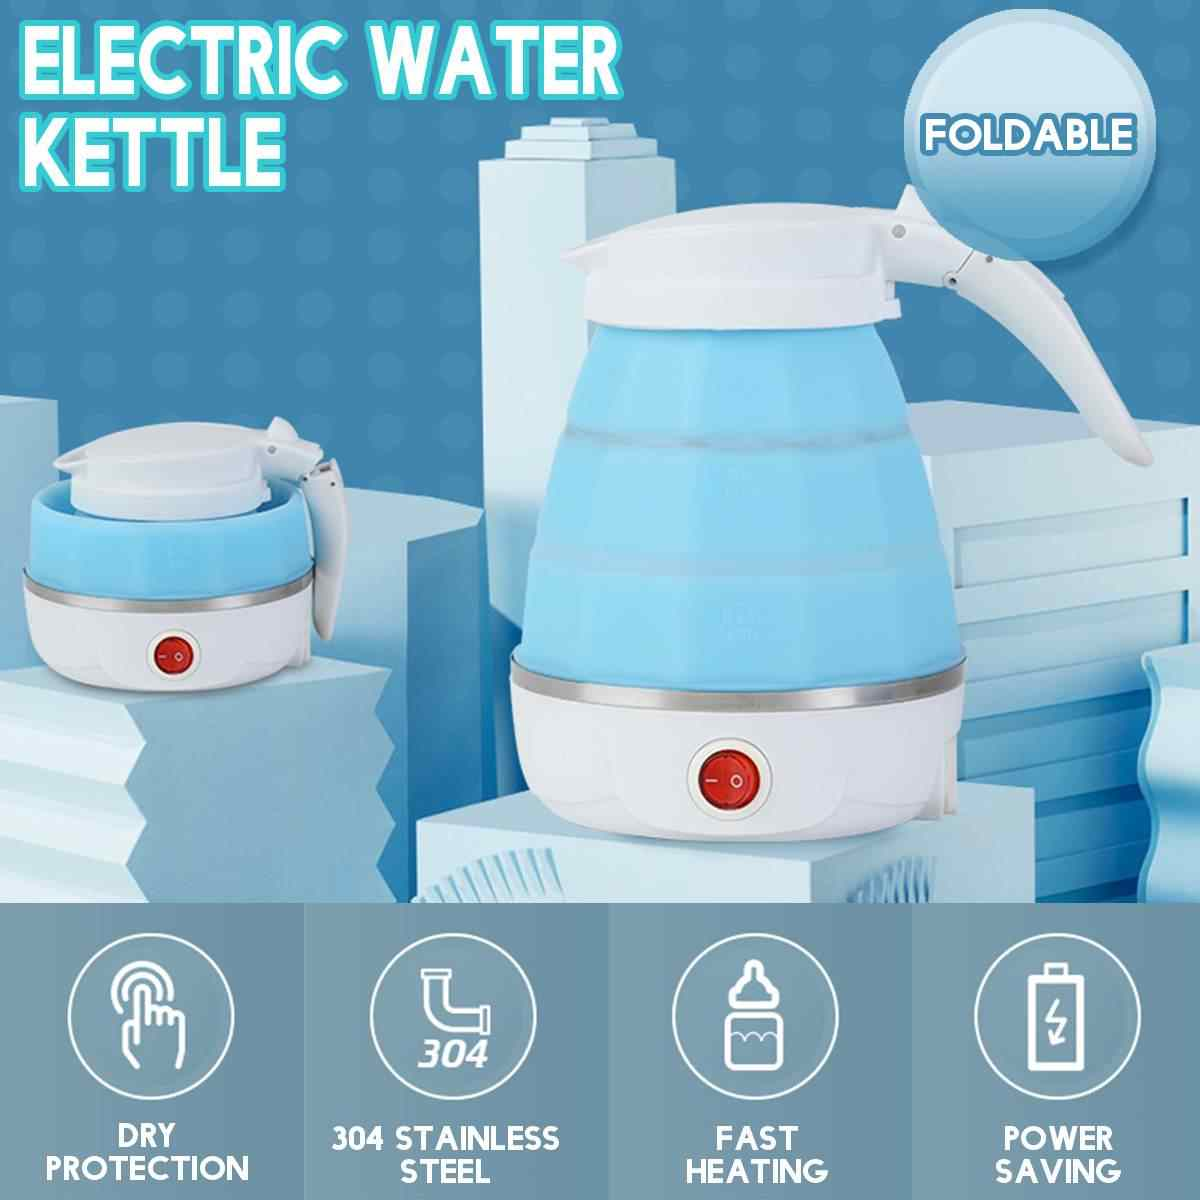 0.6L Electric Kettle Safety Silicone Foldable Portable Travel Camping Water Boiler 110-240V 700W Mini Home Electric Appliances